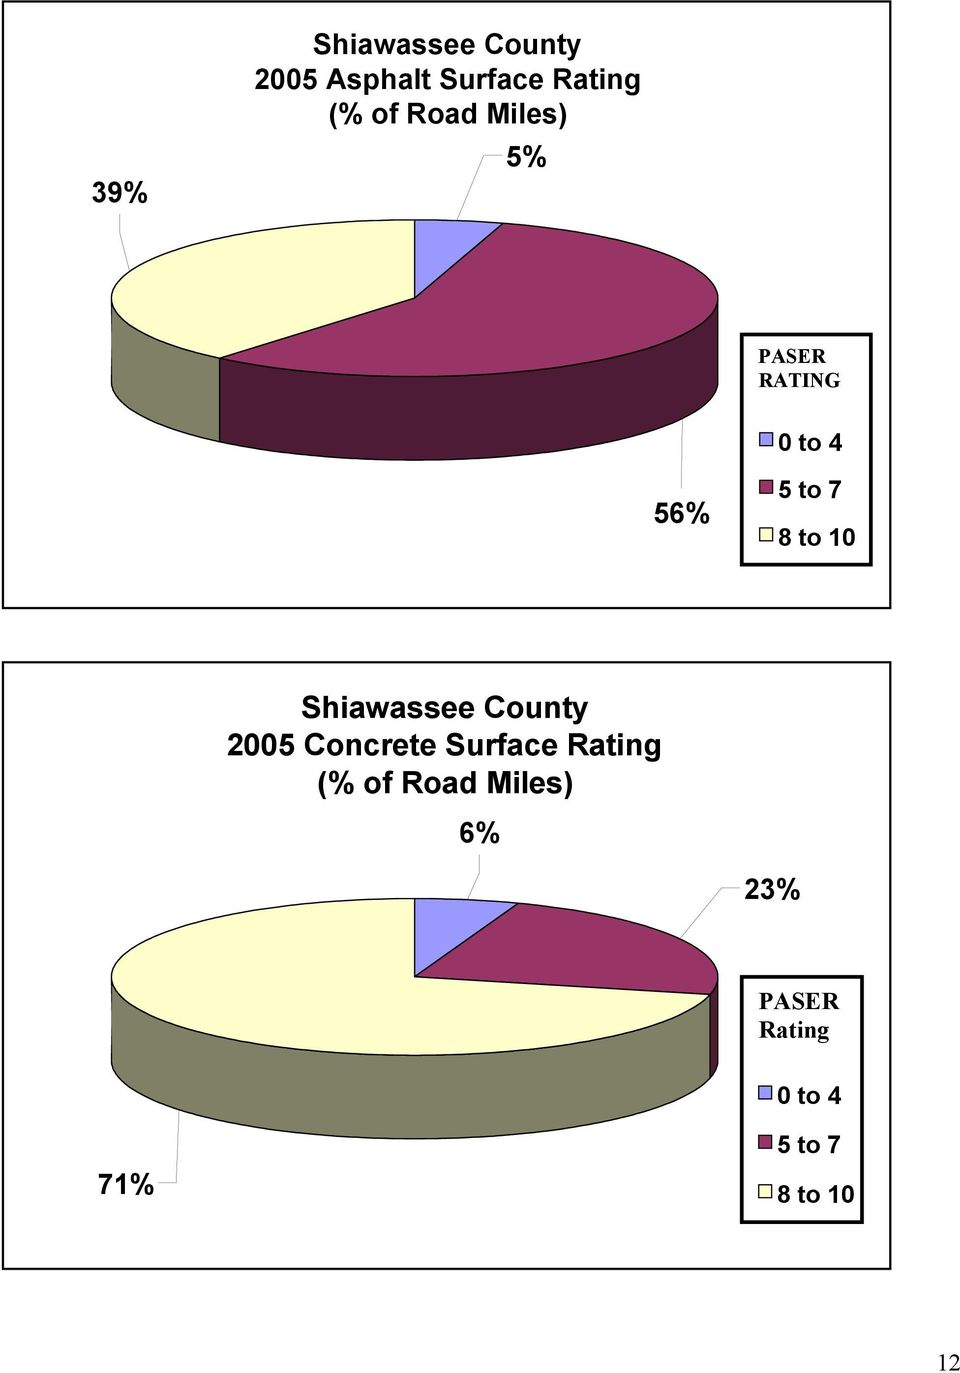 Shiawassee County 2005 Concrete Surface Rating (% of